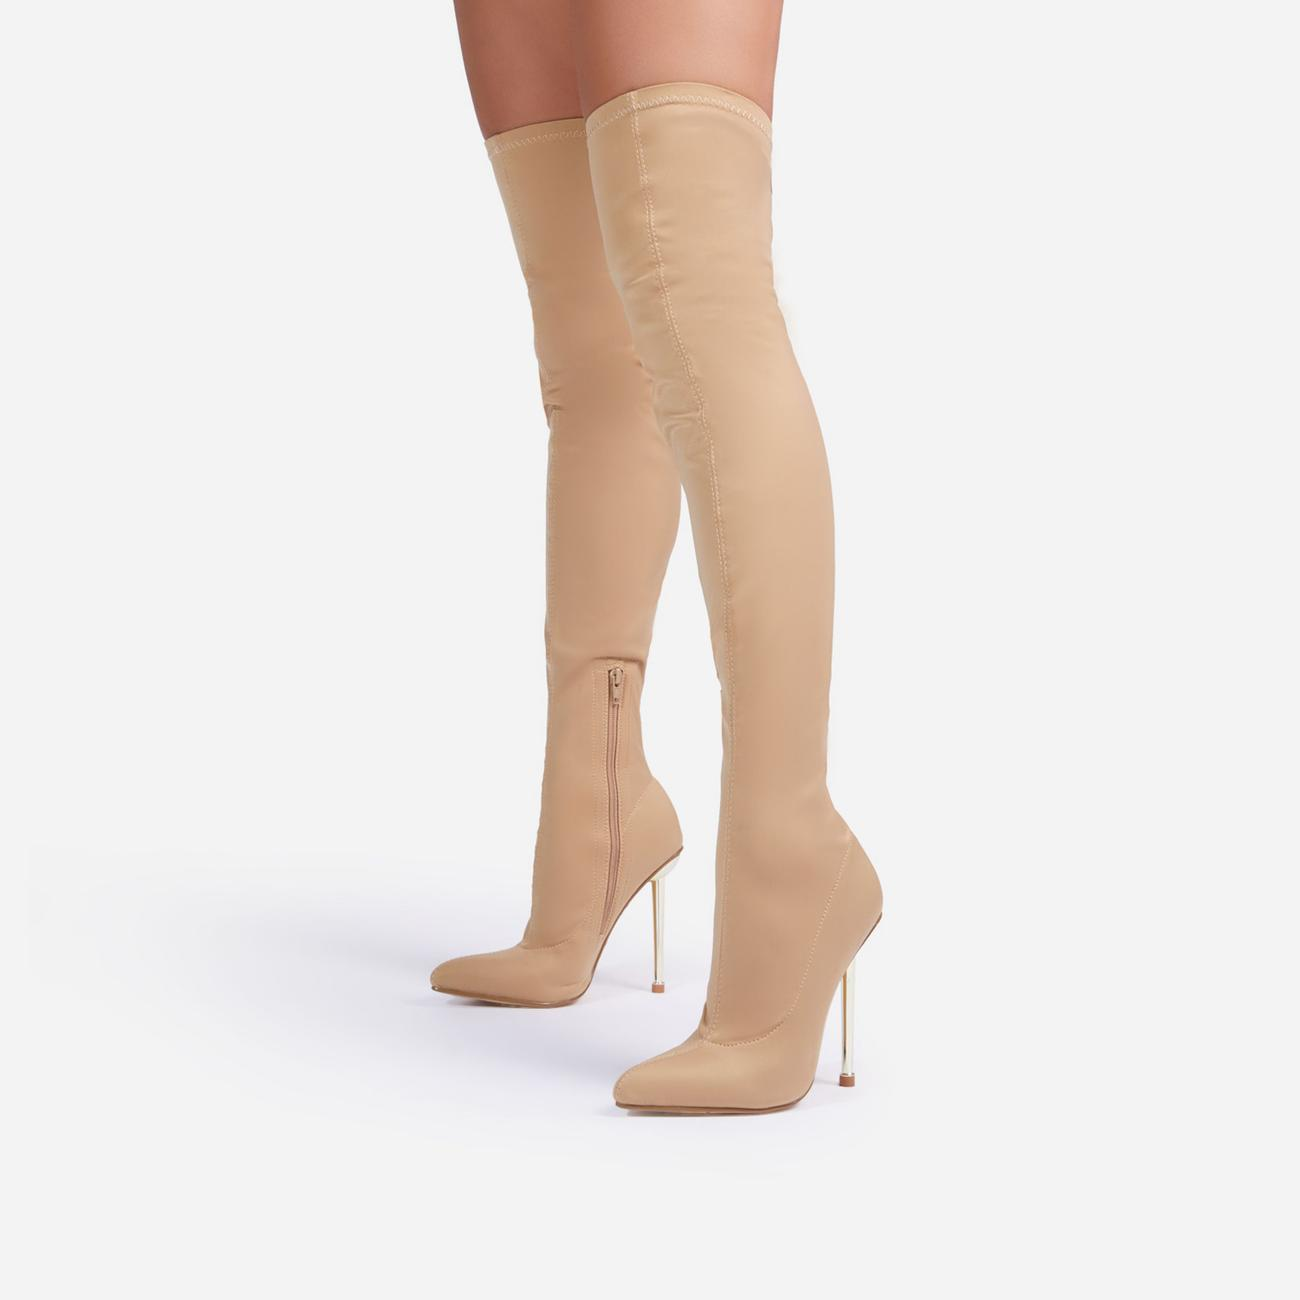 Gleam-On Pointed Toe Metallic Heel Over The Knee Thigh High Long Sock Boot In Nude Lycra